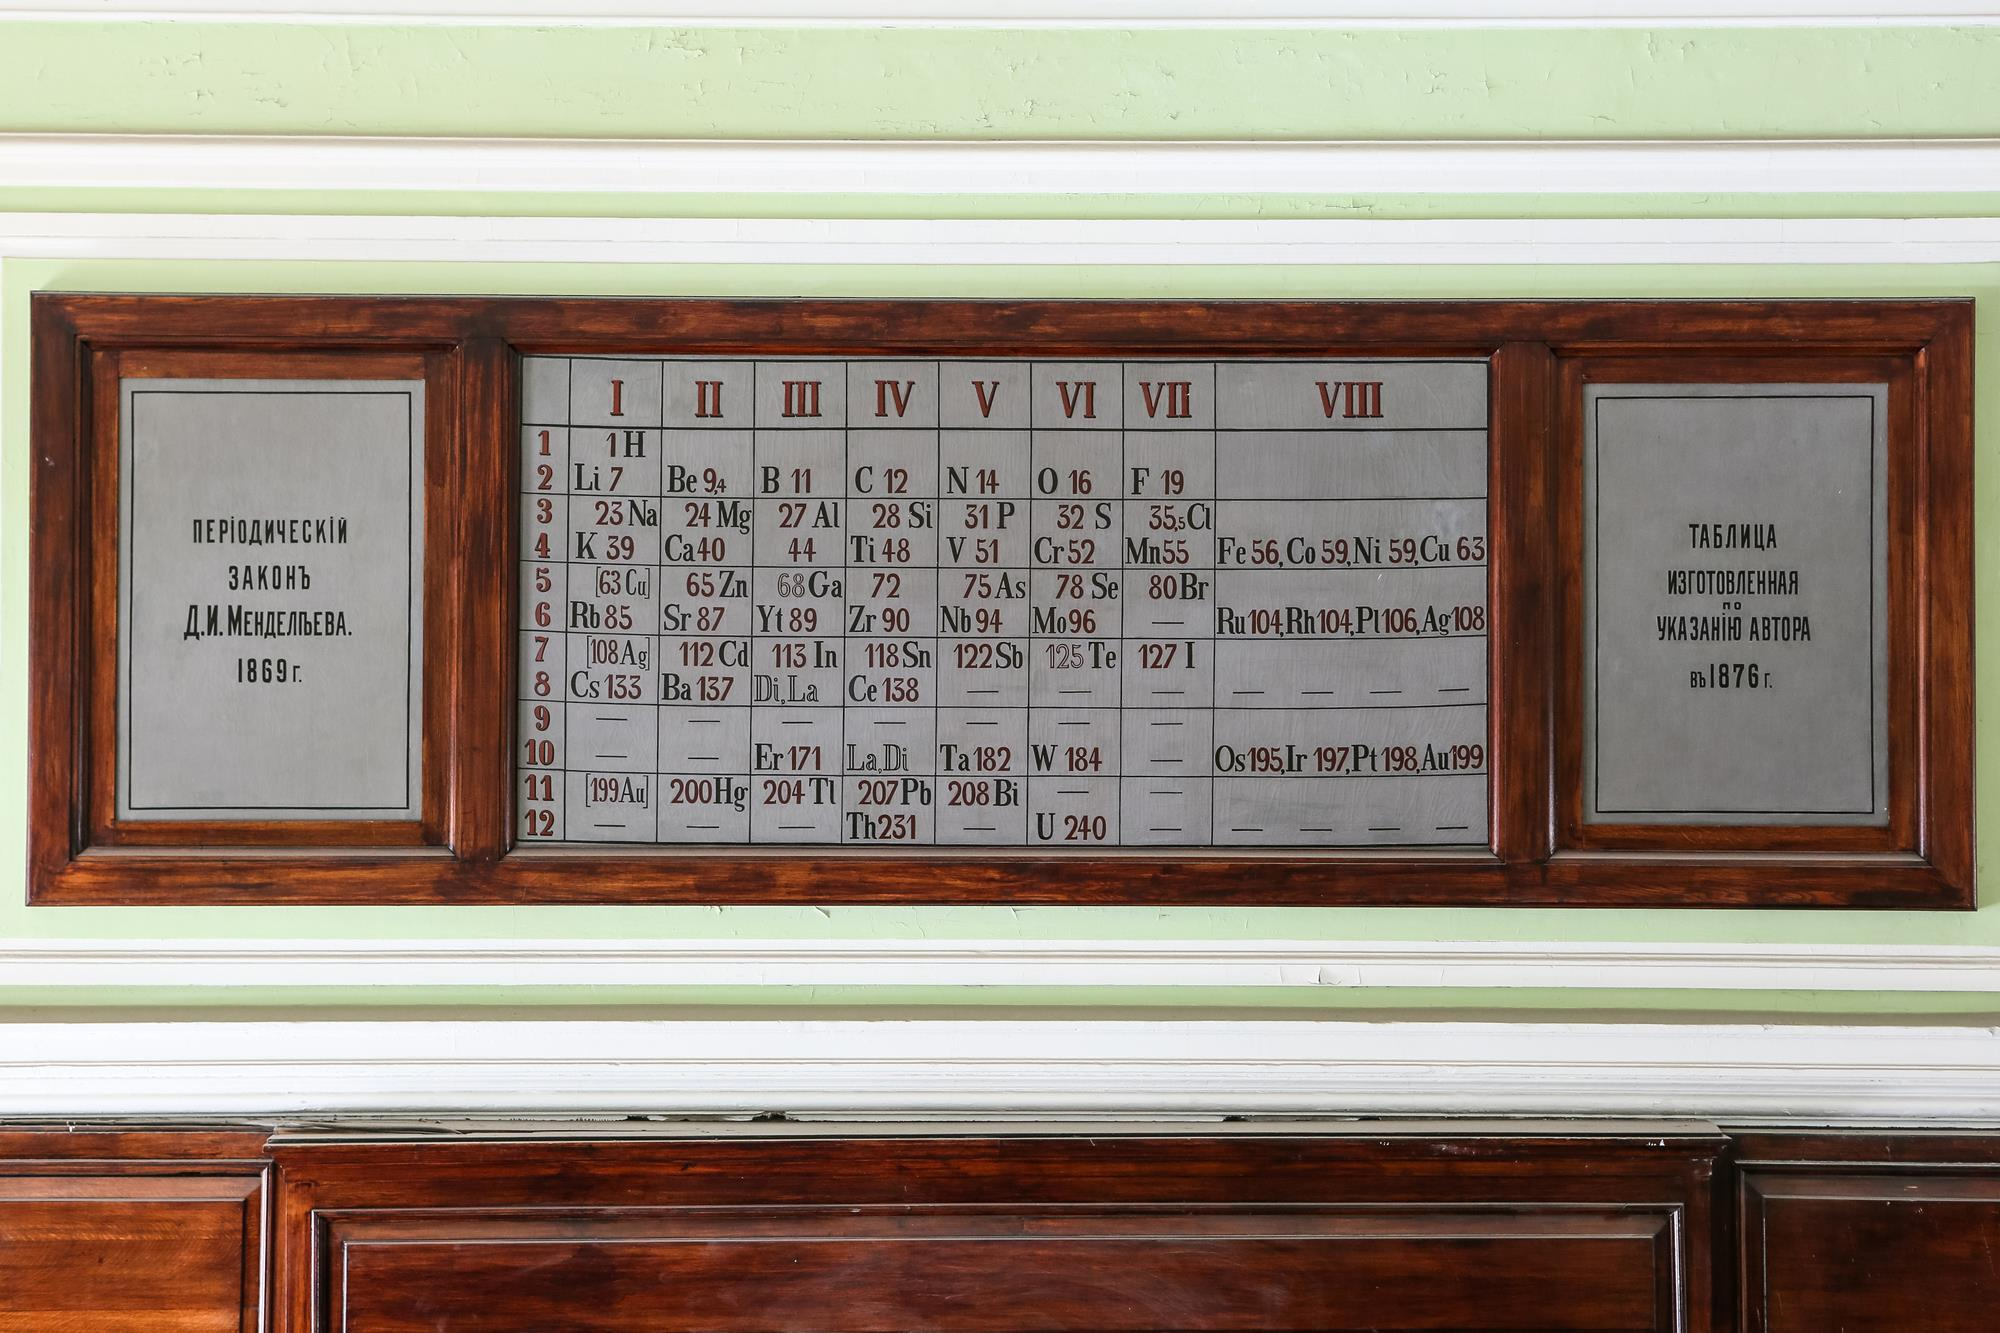 New candidate for oldest classroom periodic table emerges in Russia